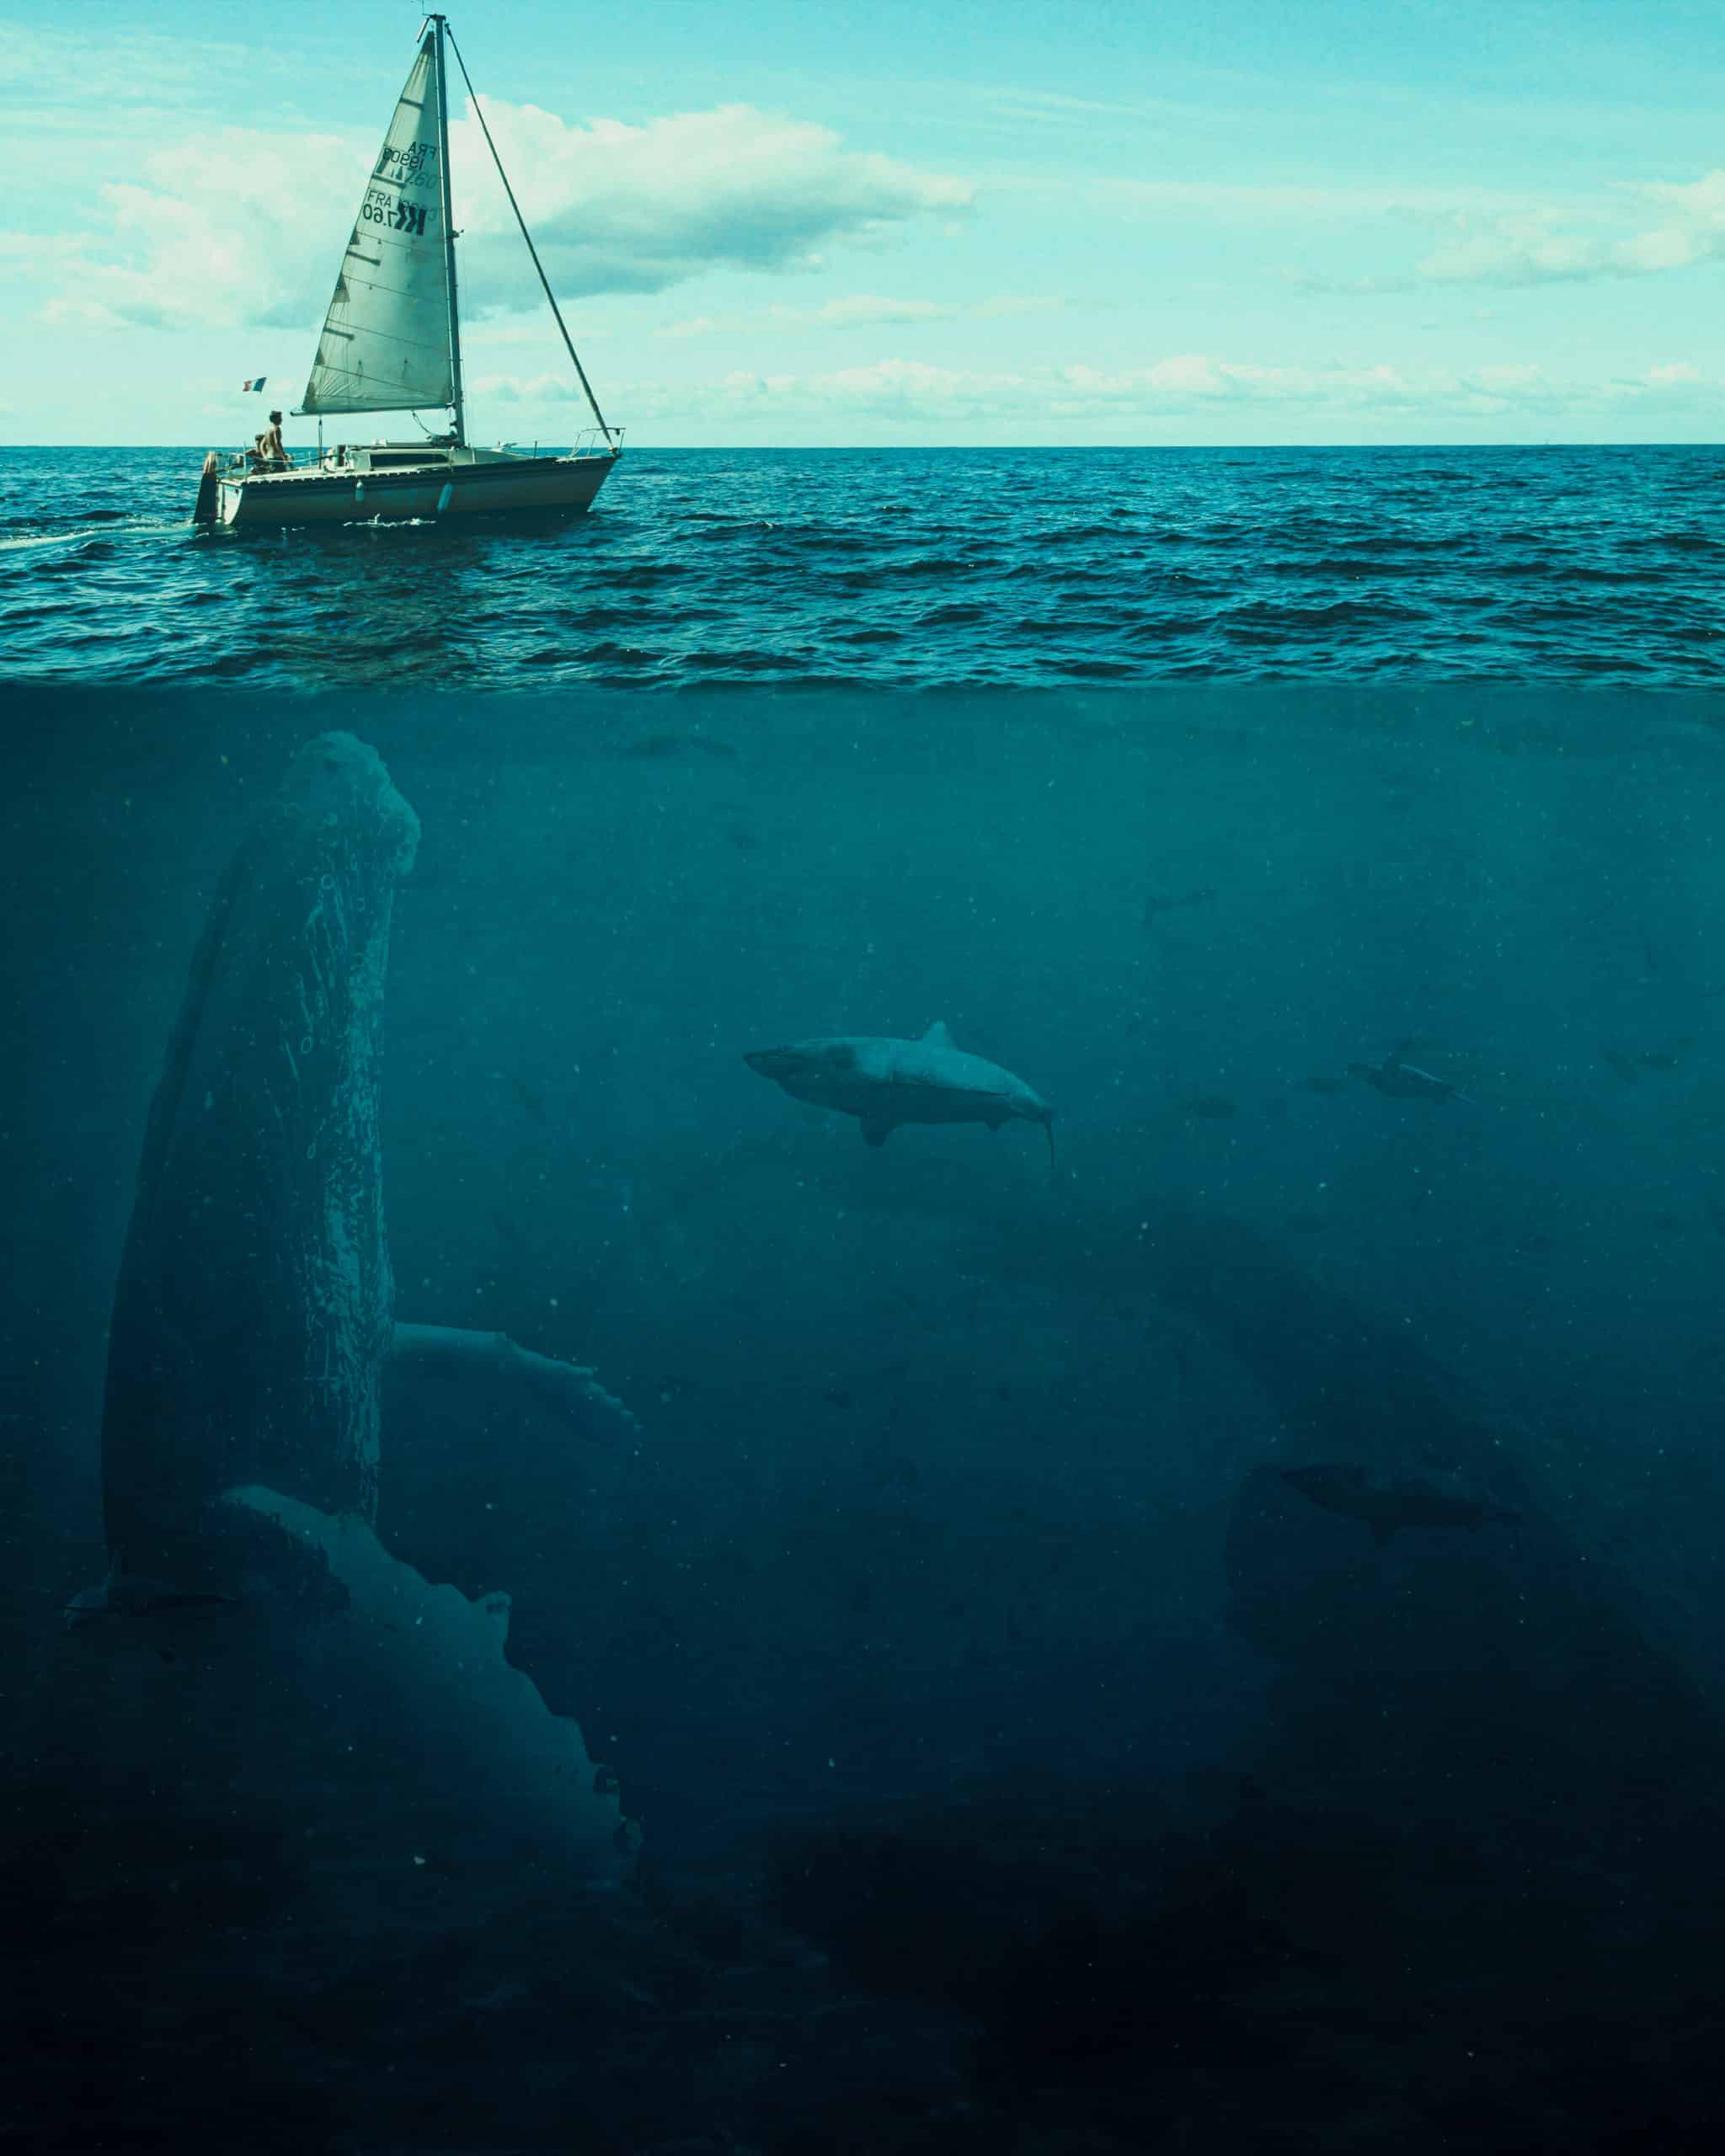 The Big Whale Photoshop Tutorial